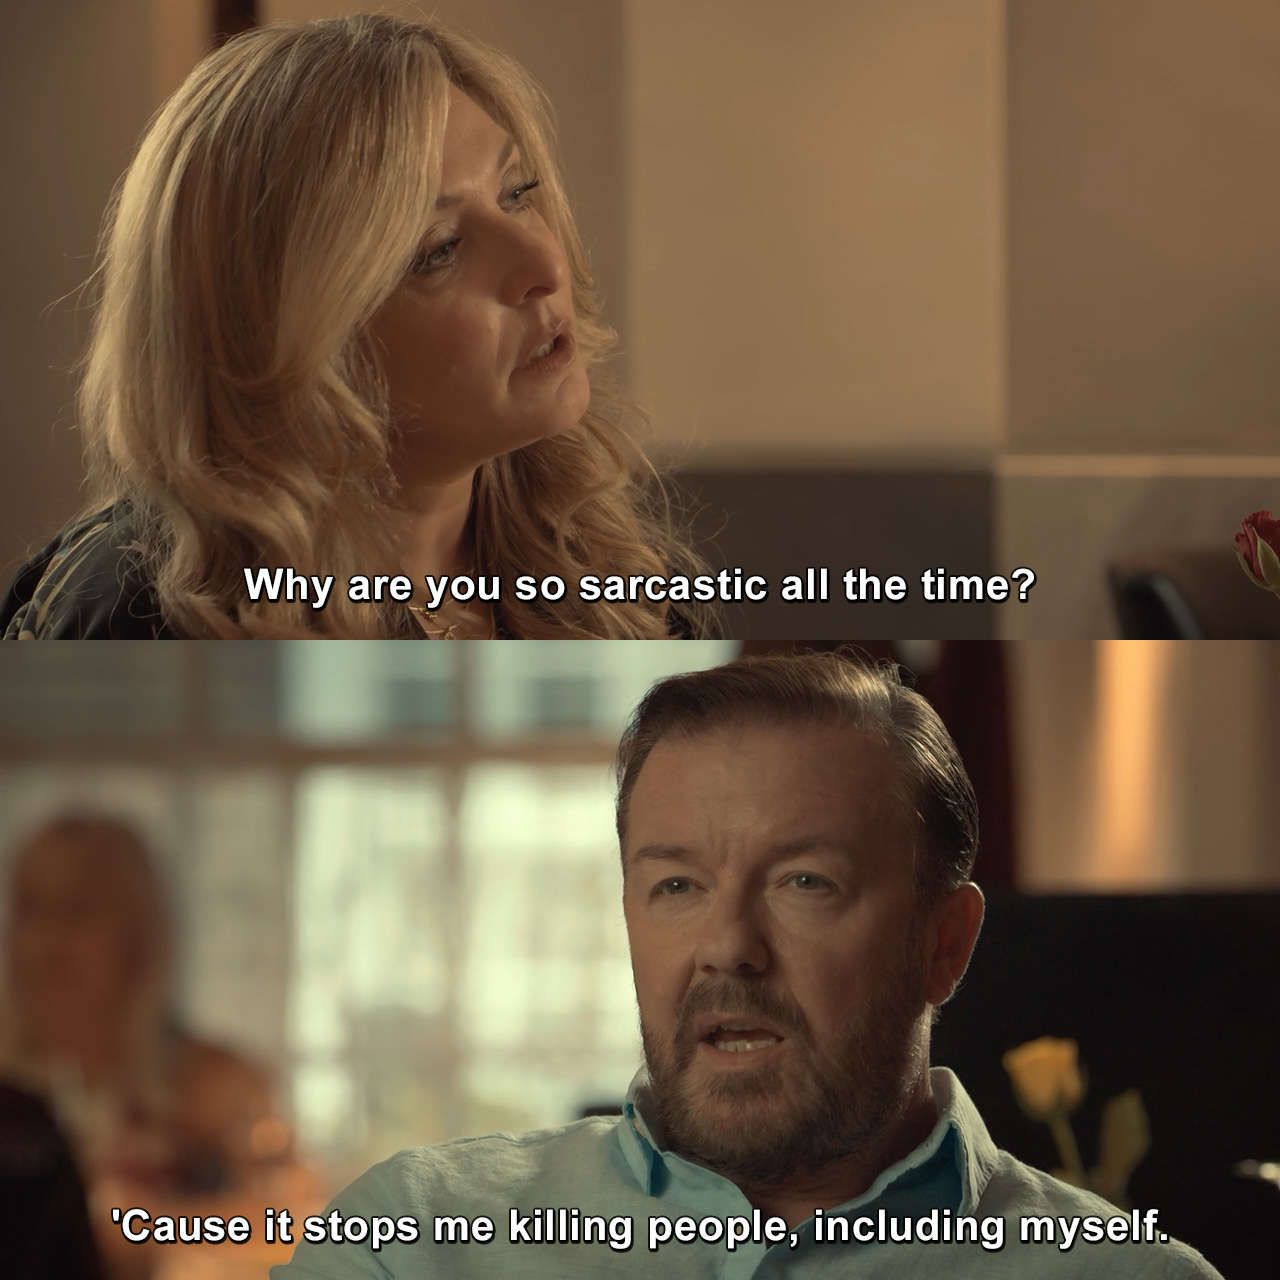 After Life Episode 4 Afterlife Episode4 Rickygervais Joke Lmao Tv Show Quotes I Kill People Netflix Quotes